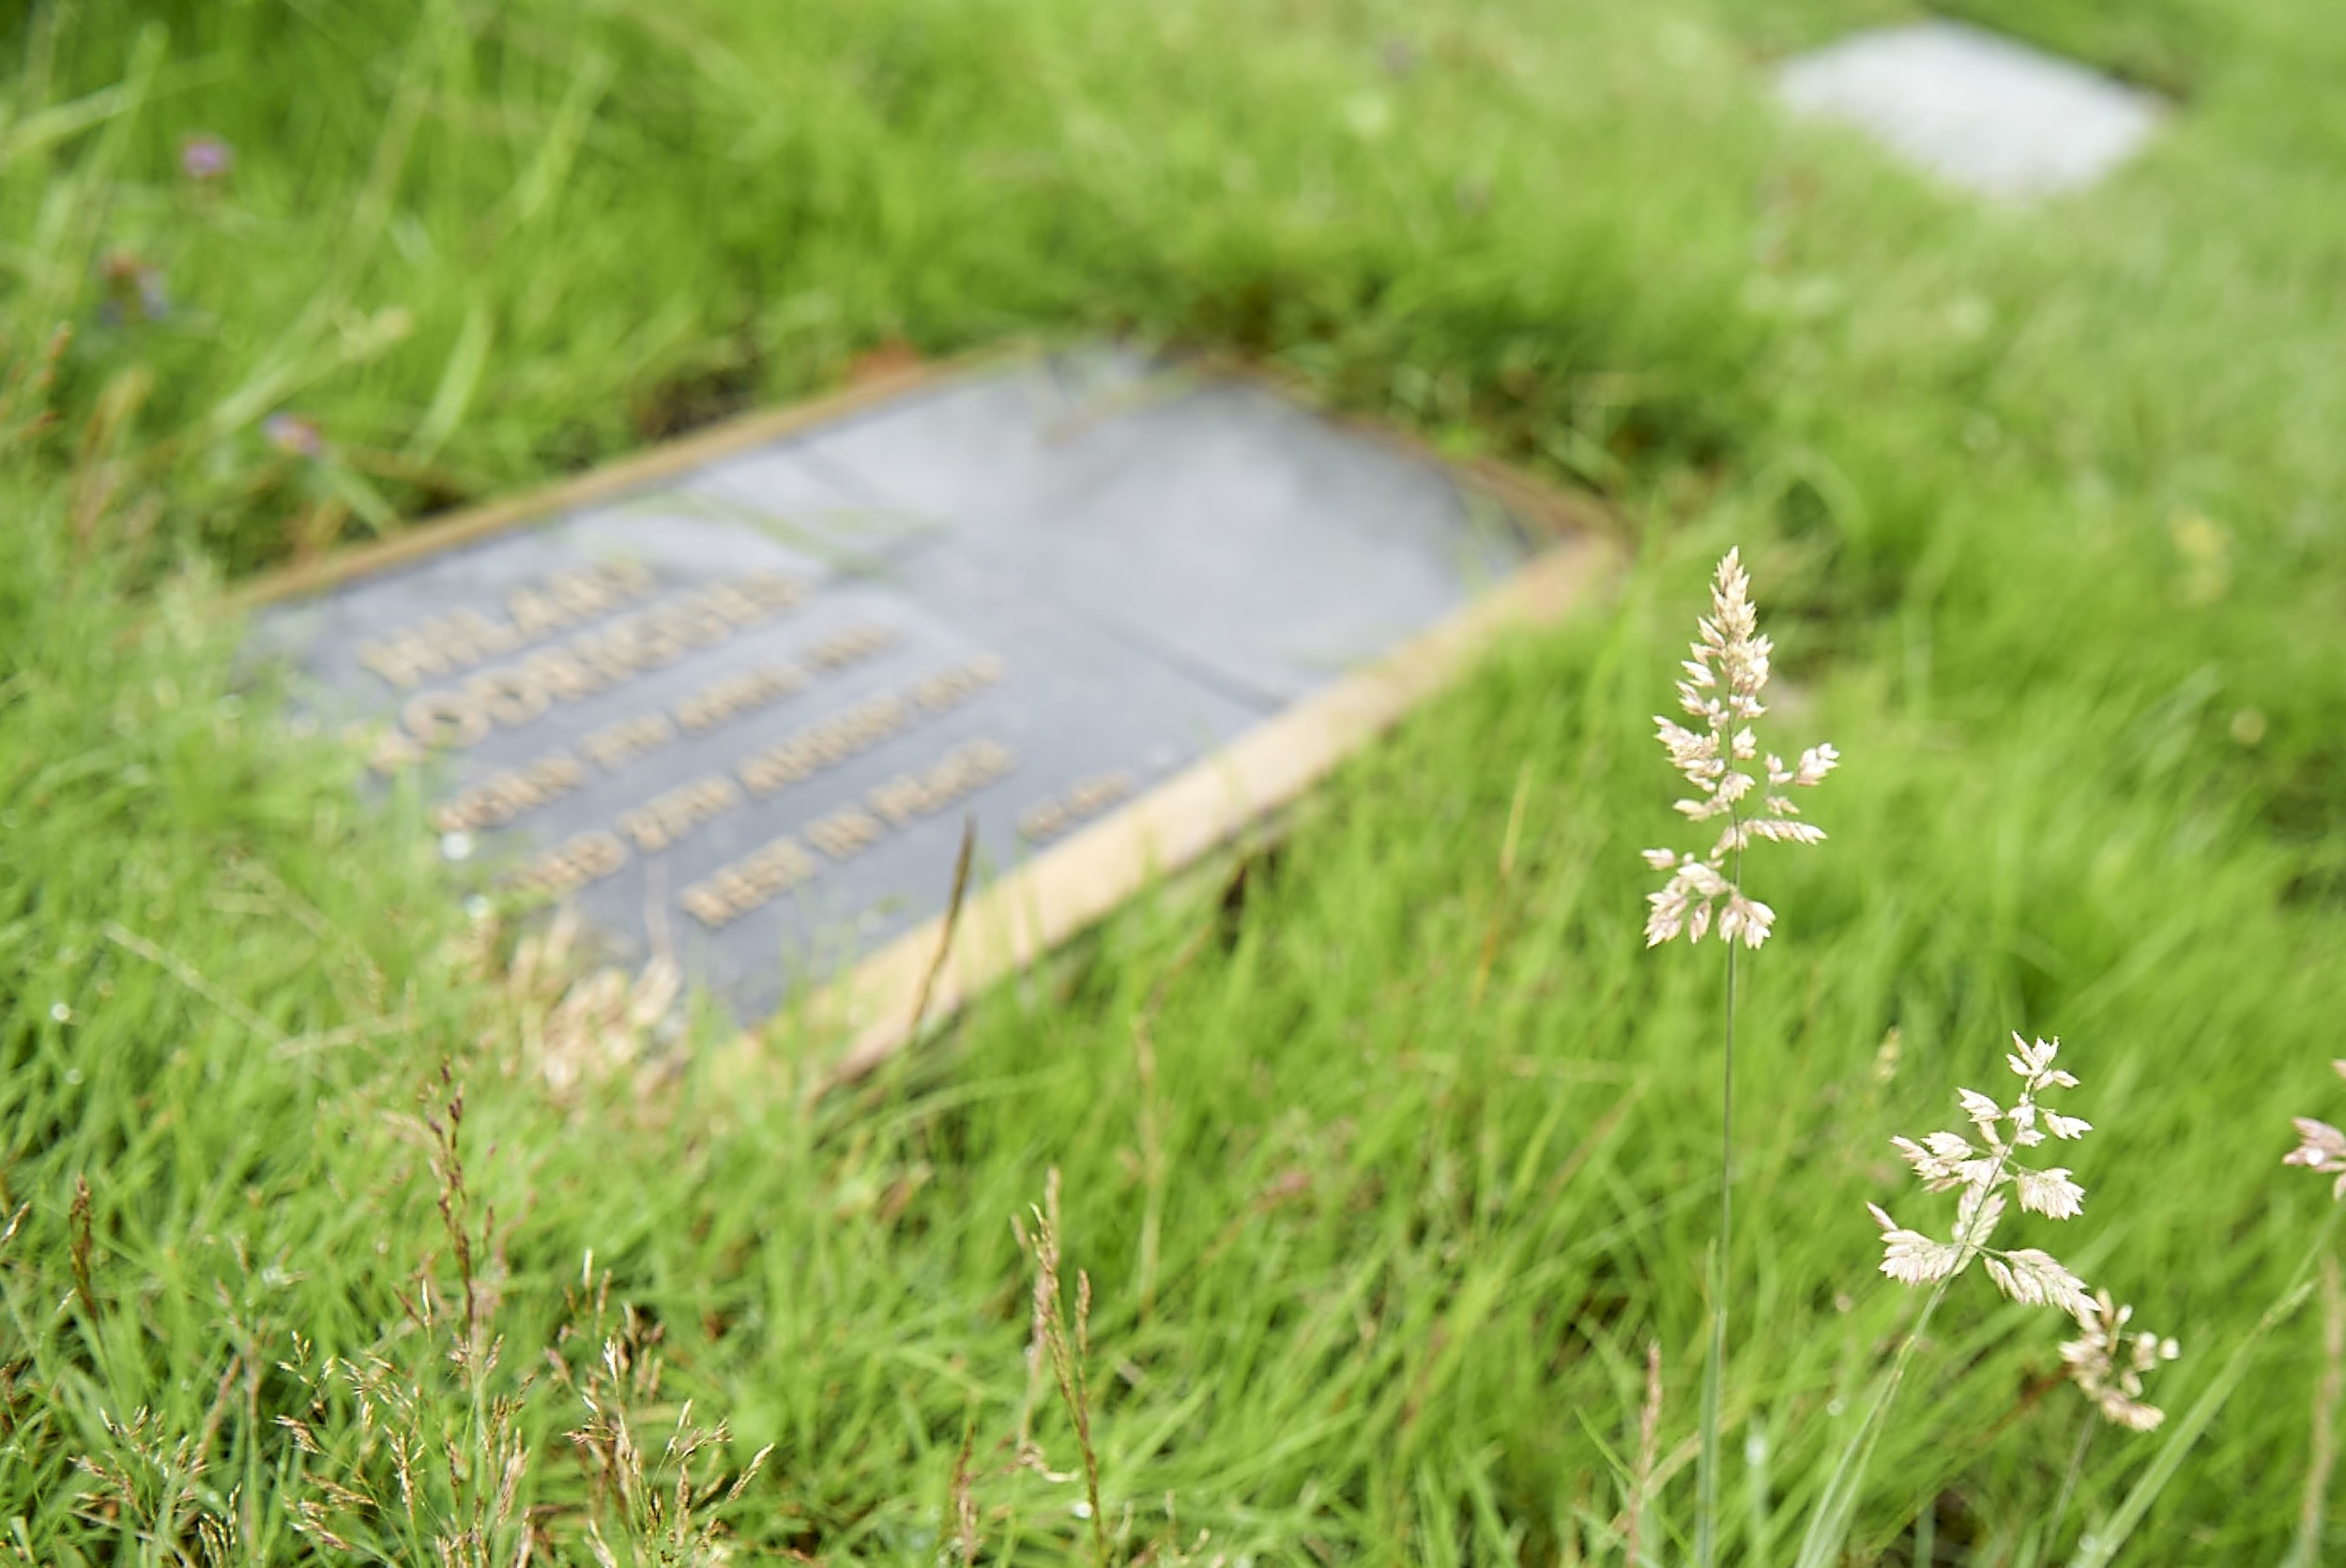 Lawn-styled cemetery where only flat memorial plaques are allowed